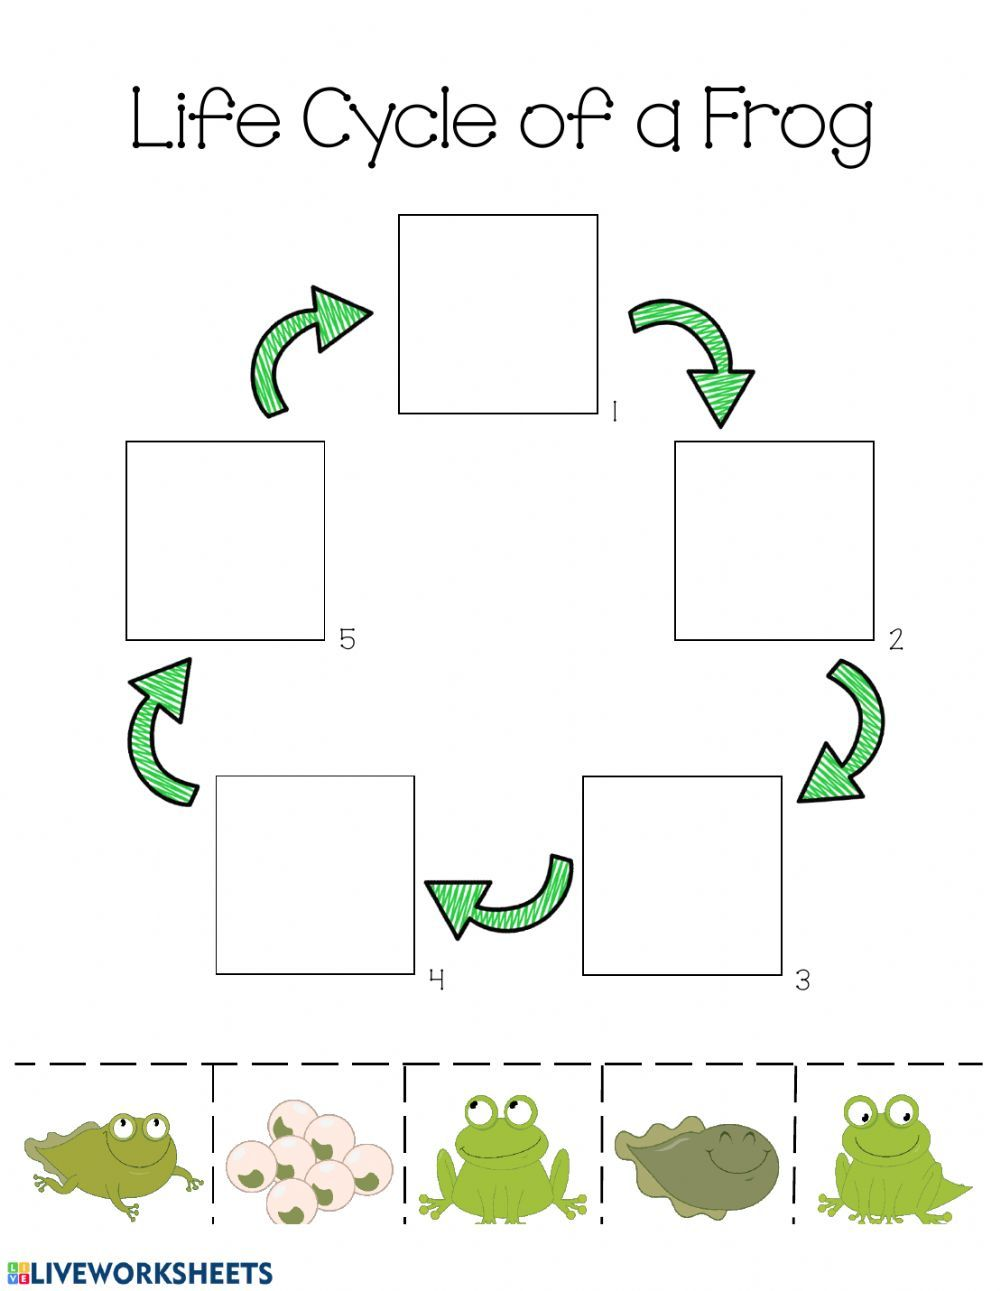 Life Cycle Of A Frog Life Cycle Worksheet Life Cycles Preschool Frog Life Cycle Activities Life Cycles [ 1291 x 1000 Pixel ]